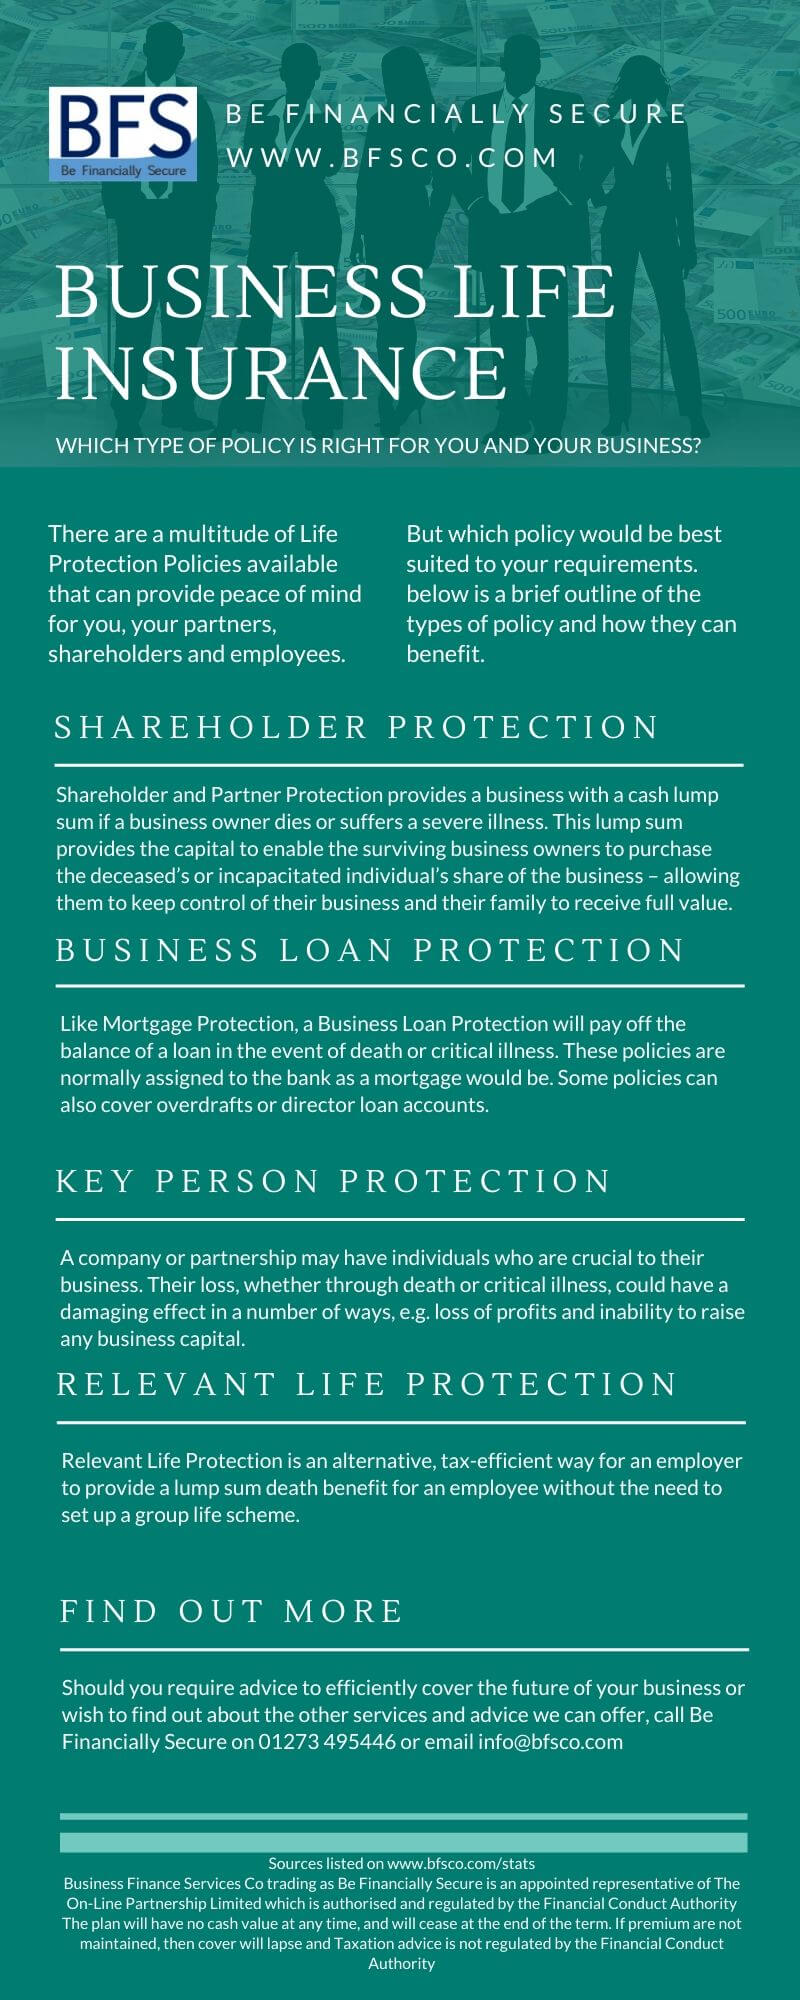 Business Life Insurance